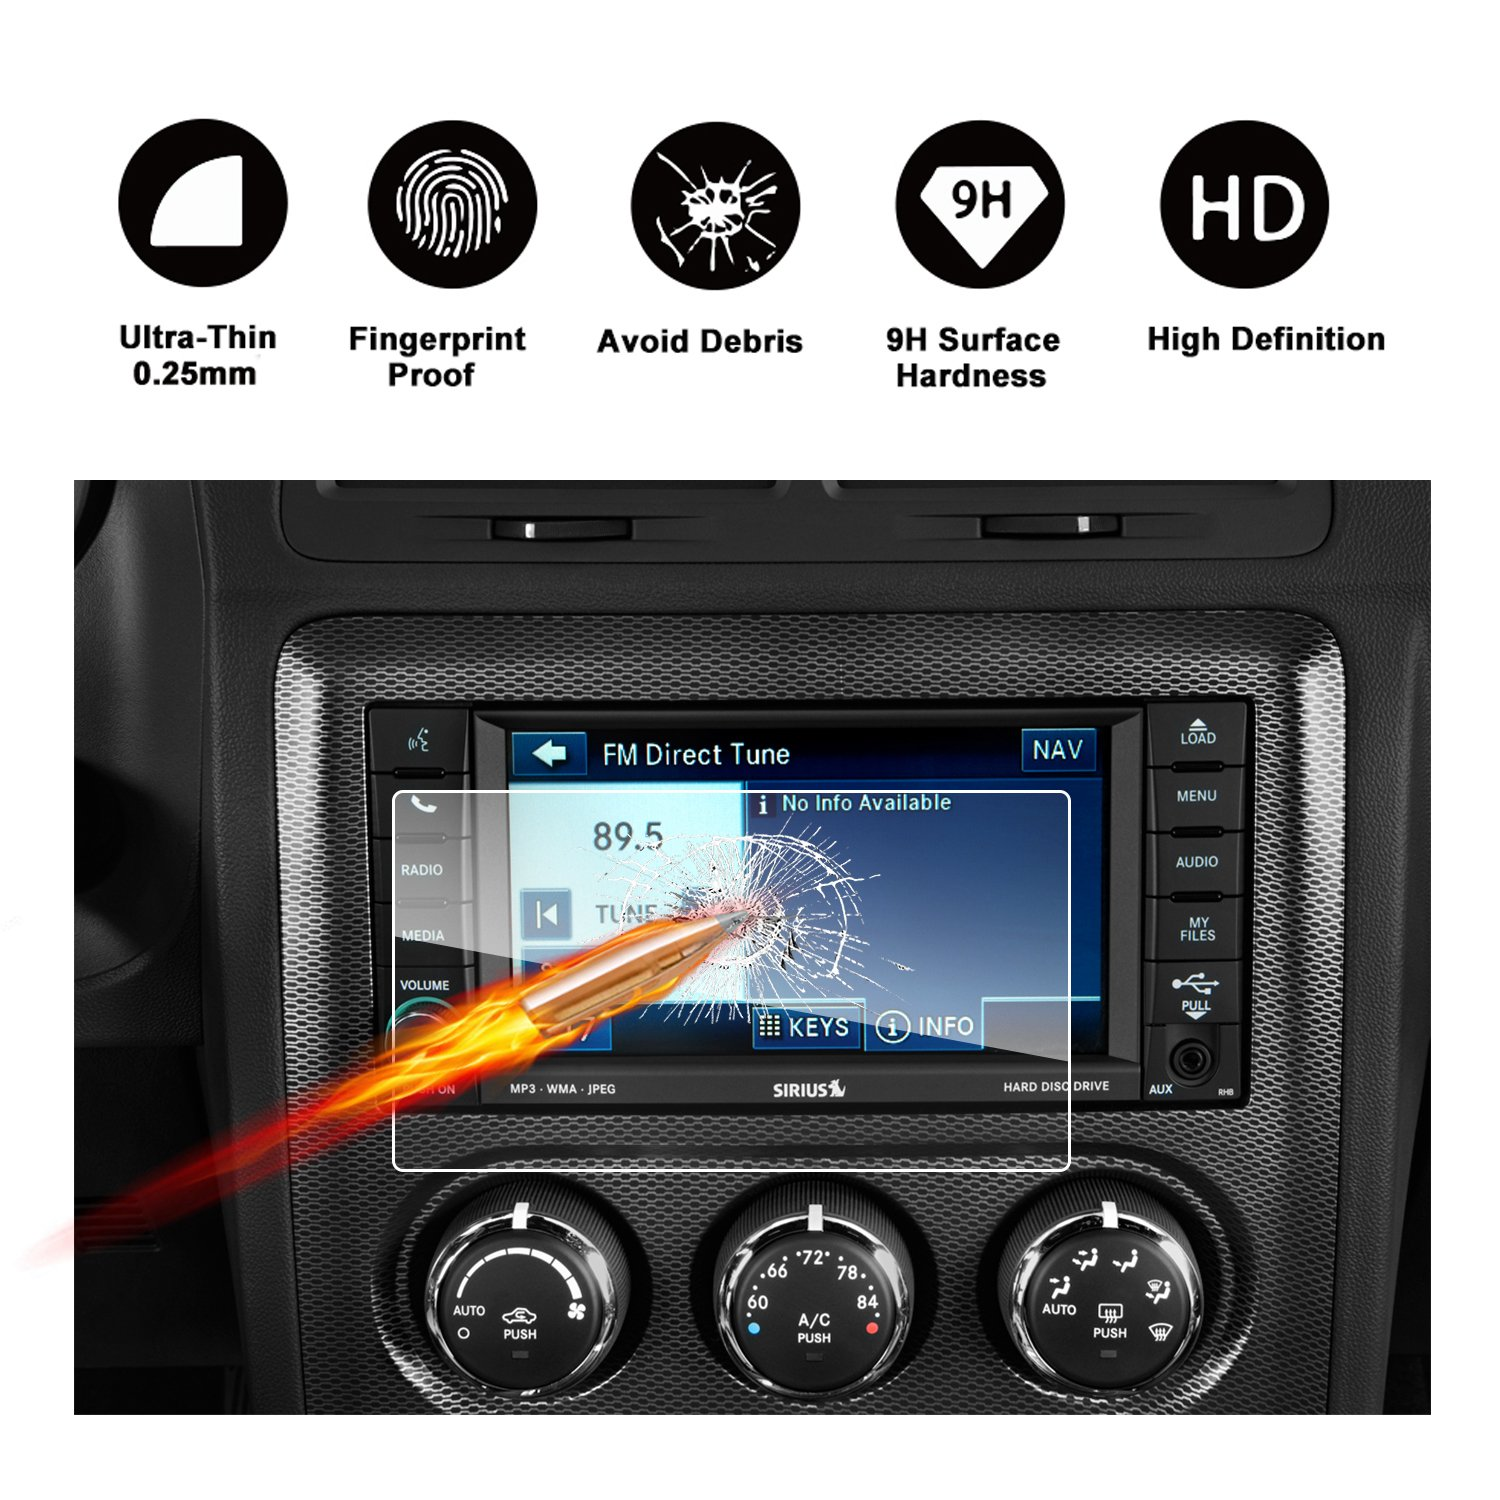 RUIYA HD Clear TEMPERED GLASS Car In-Dash Screen Protective Film 4350460822 2015-2018 Dodge Challenger SRT 392 Hellcat Uconnect Touch Screen Car Display Navigation Screen Protector 8.4-Inch